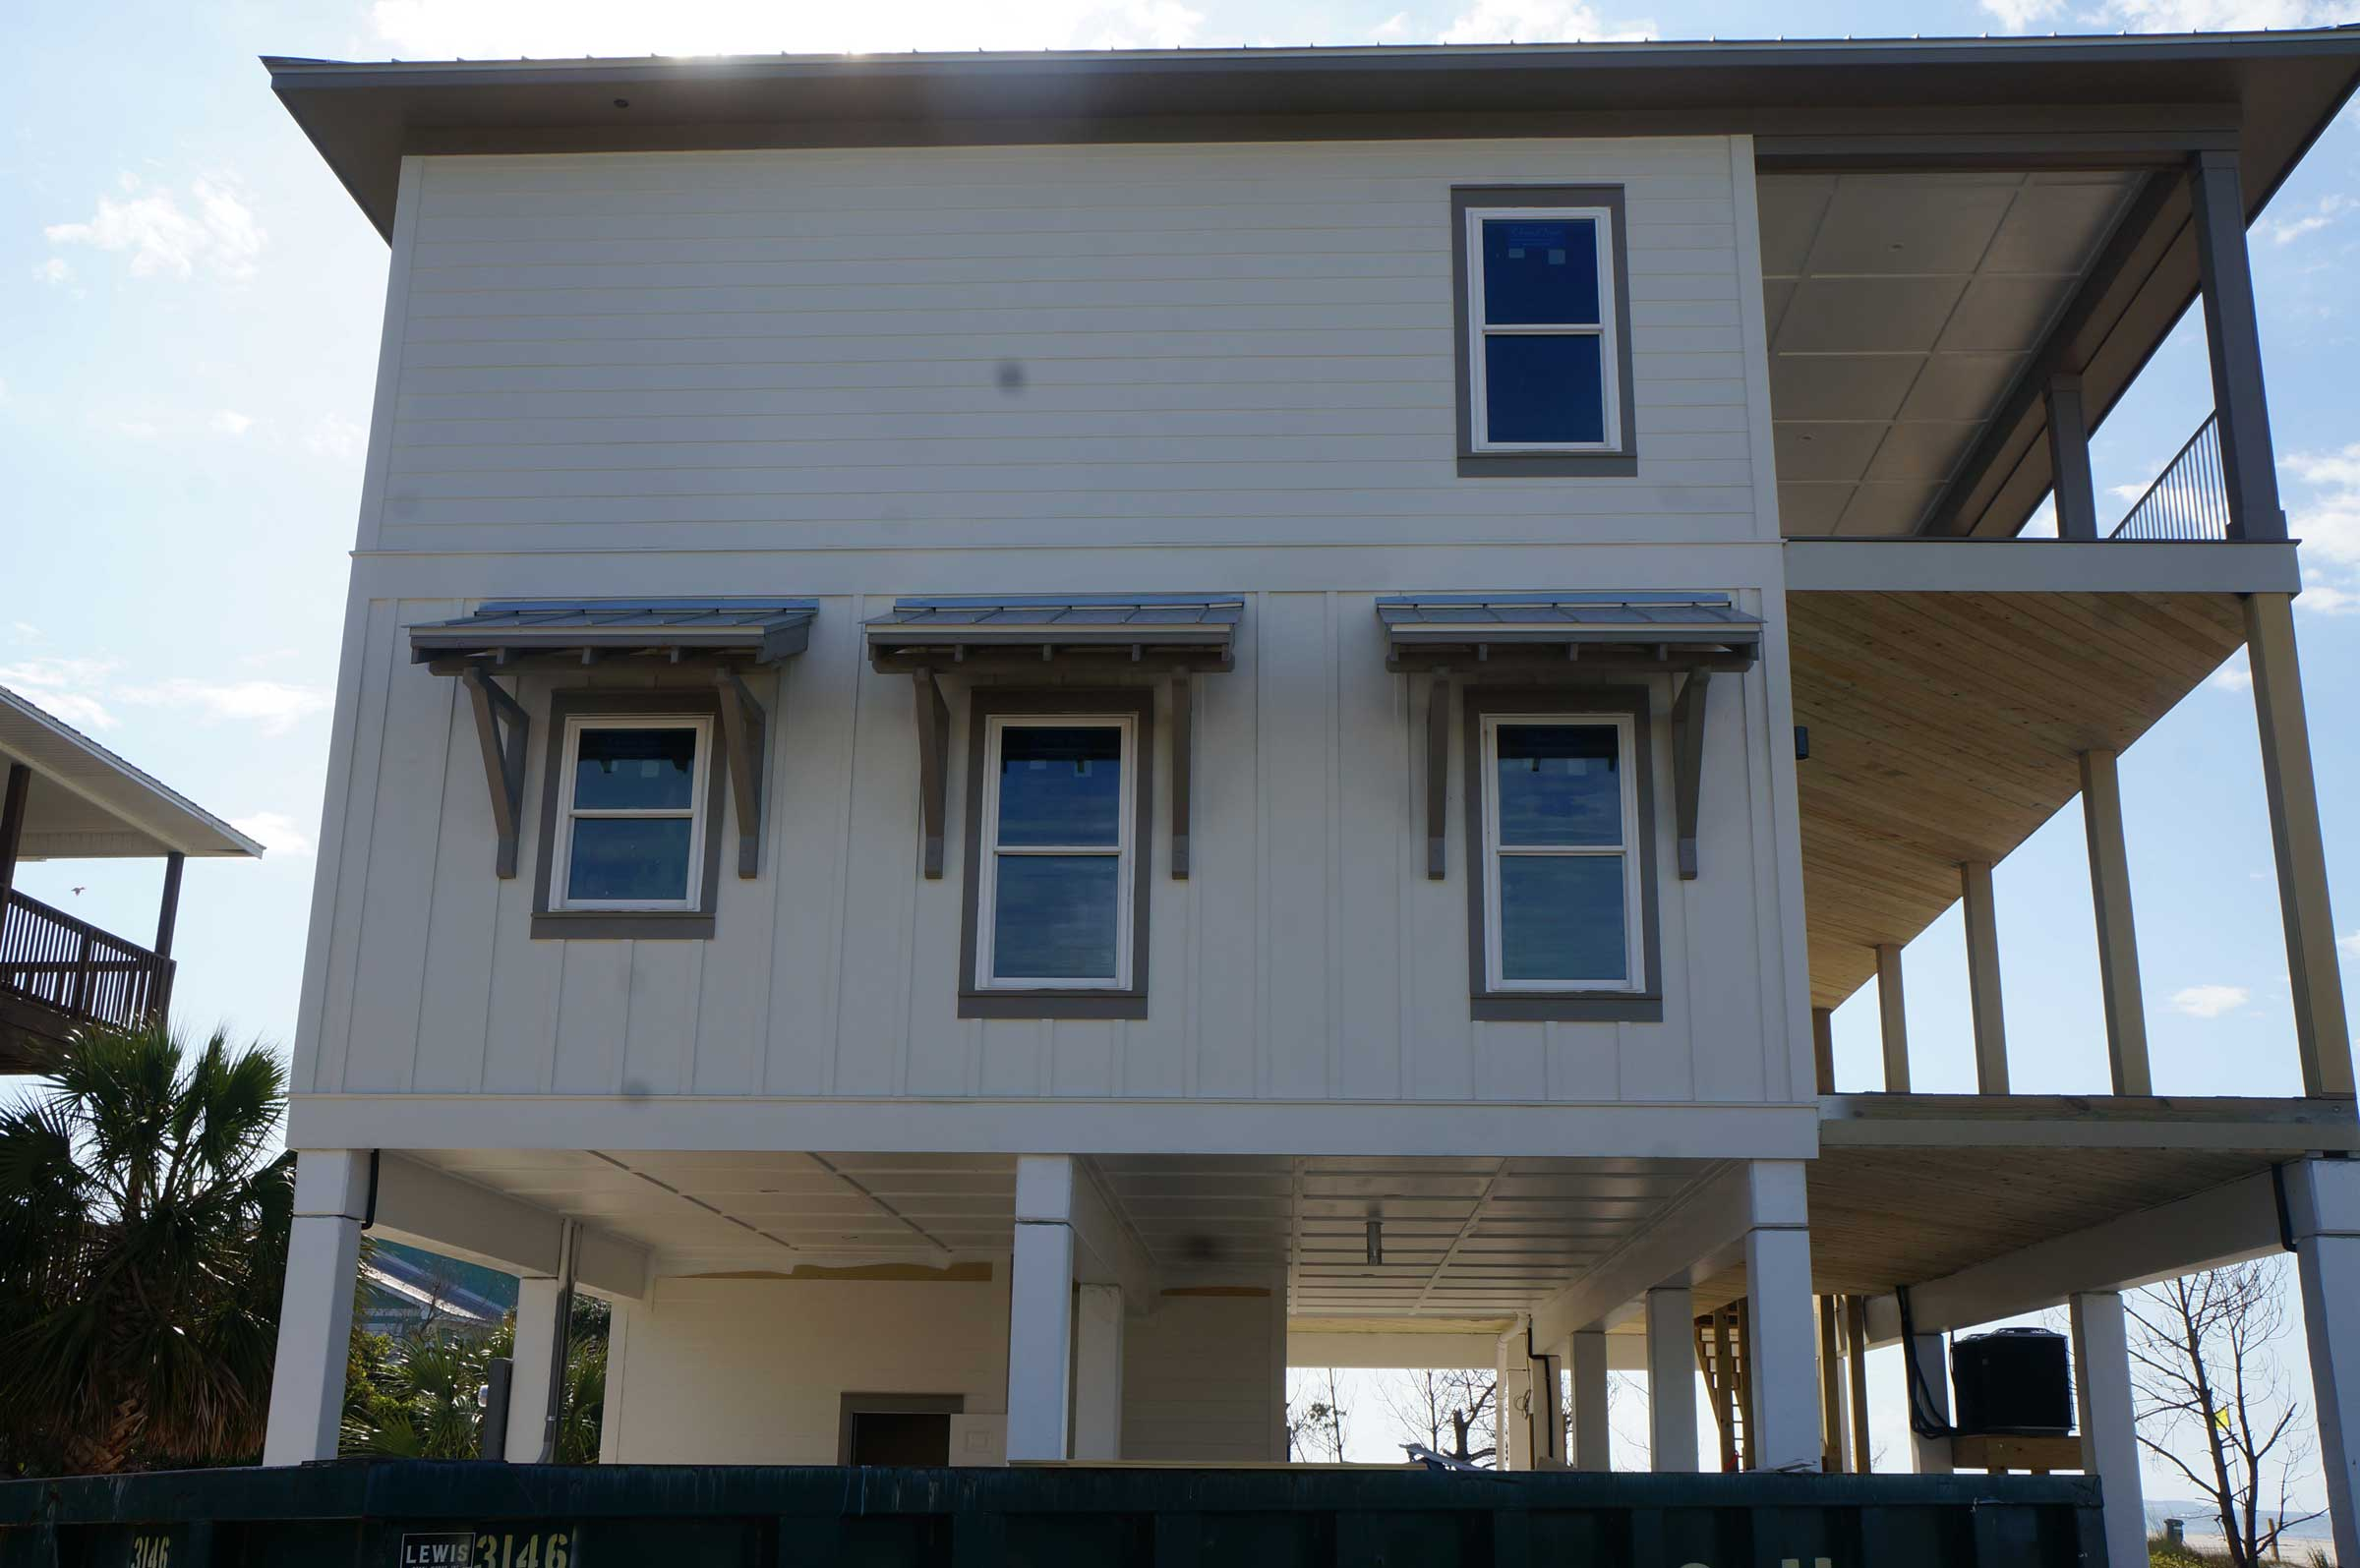 Exterior view of windows with outside shade covers.